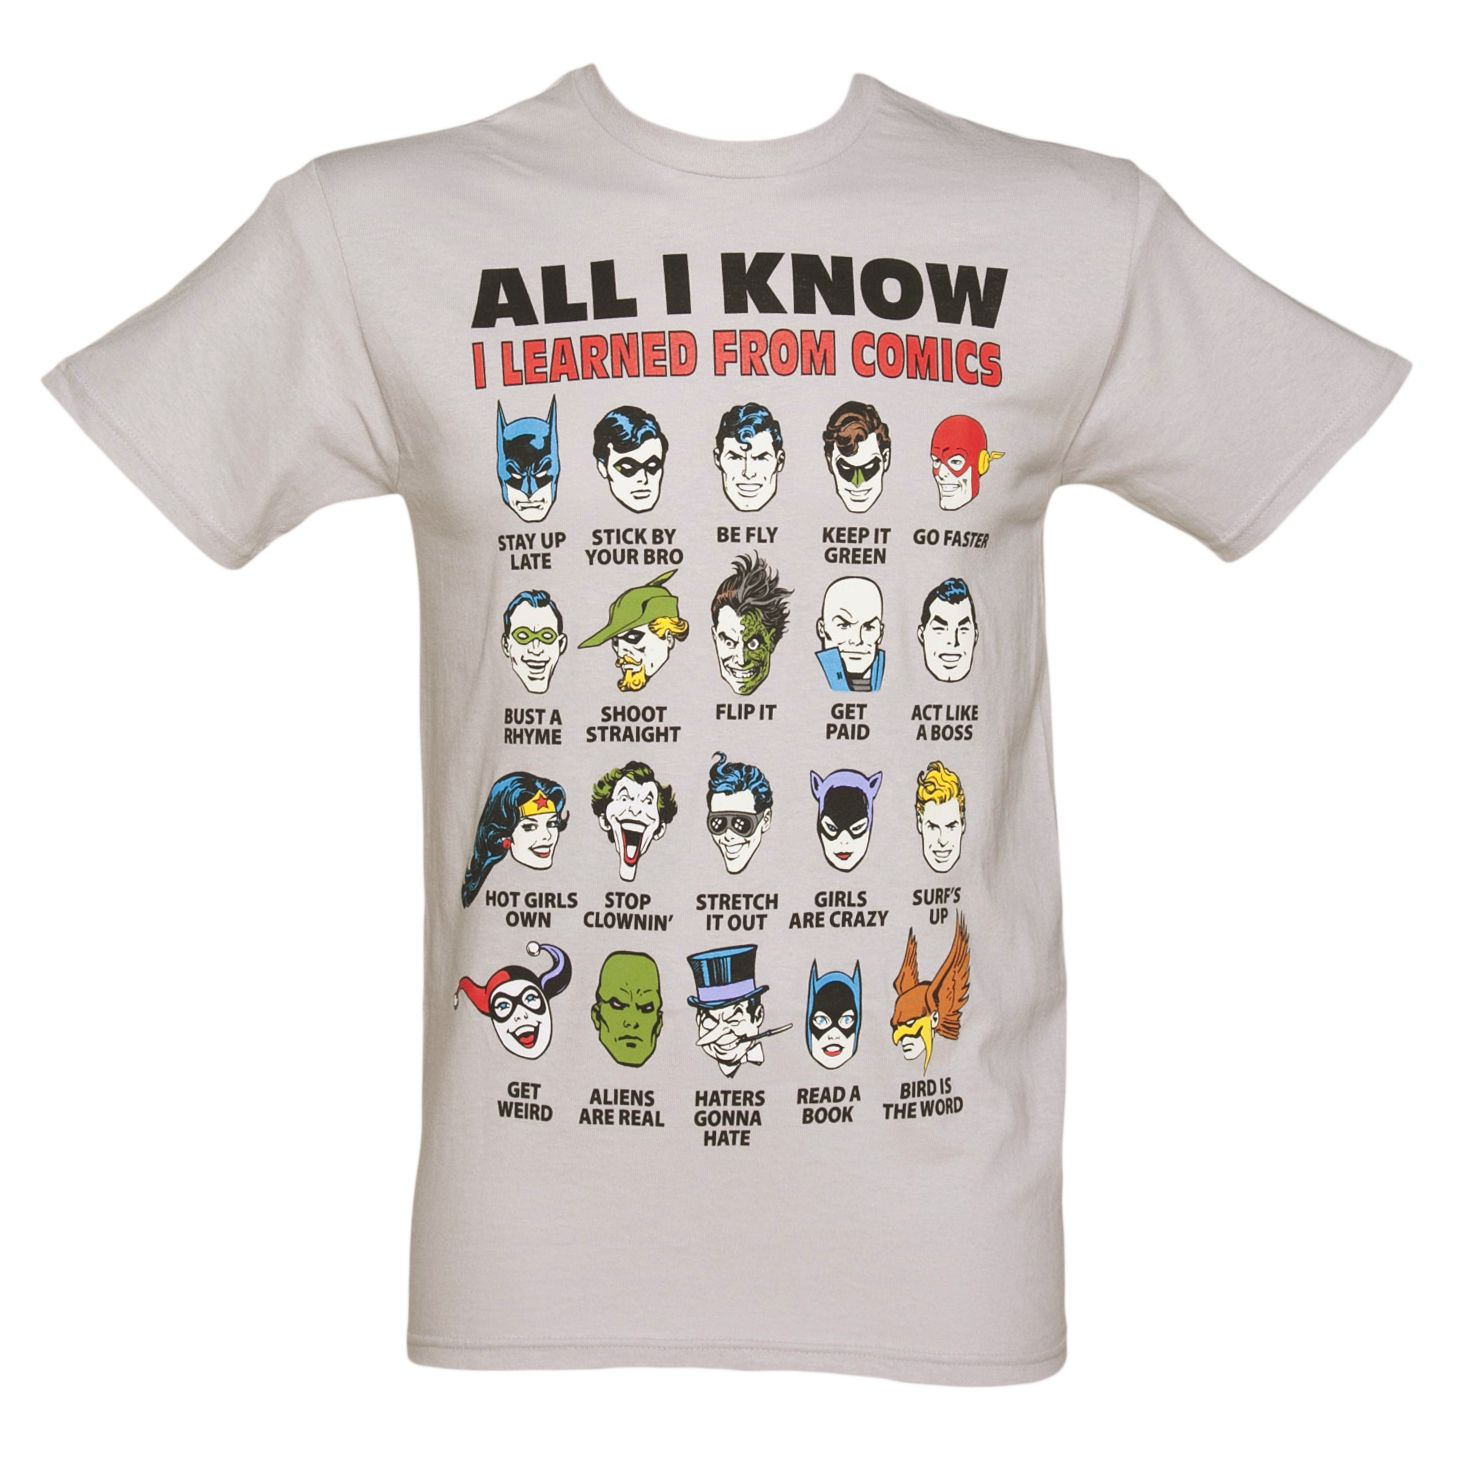 16b5f5da0 Sum of it all | Everything I know, I learned from Comics | Batman t ...